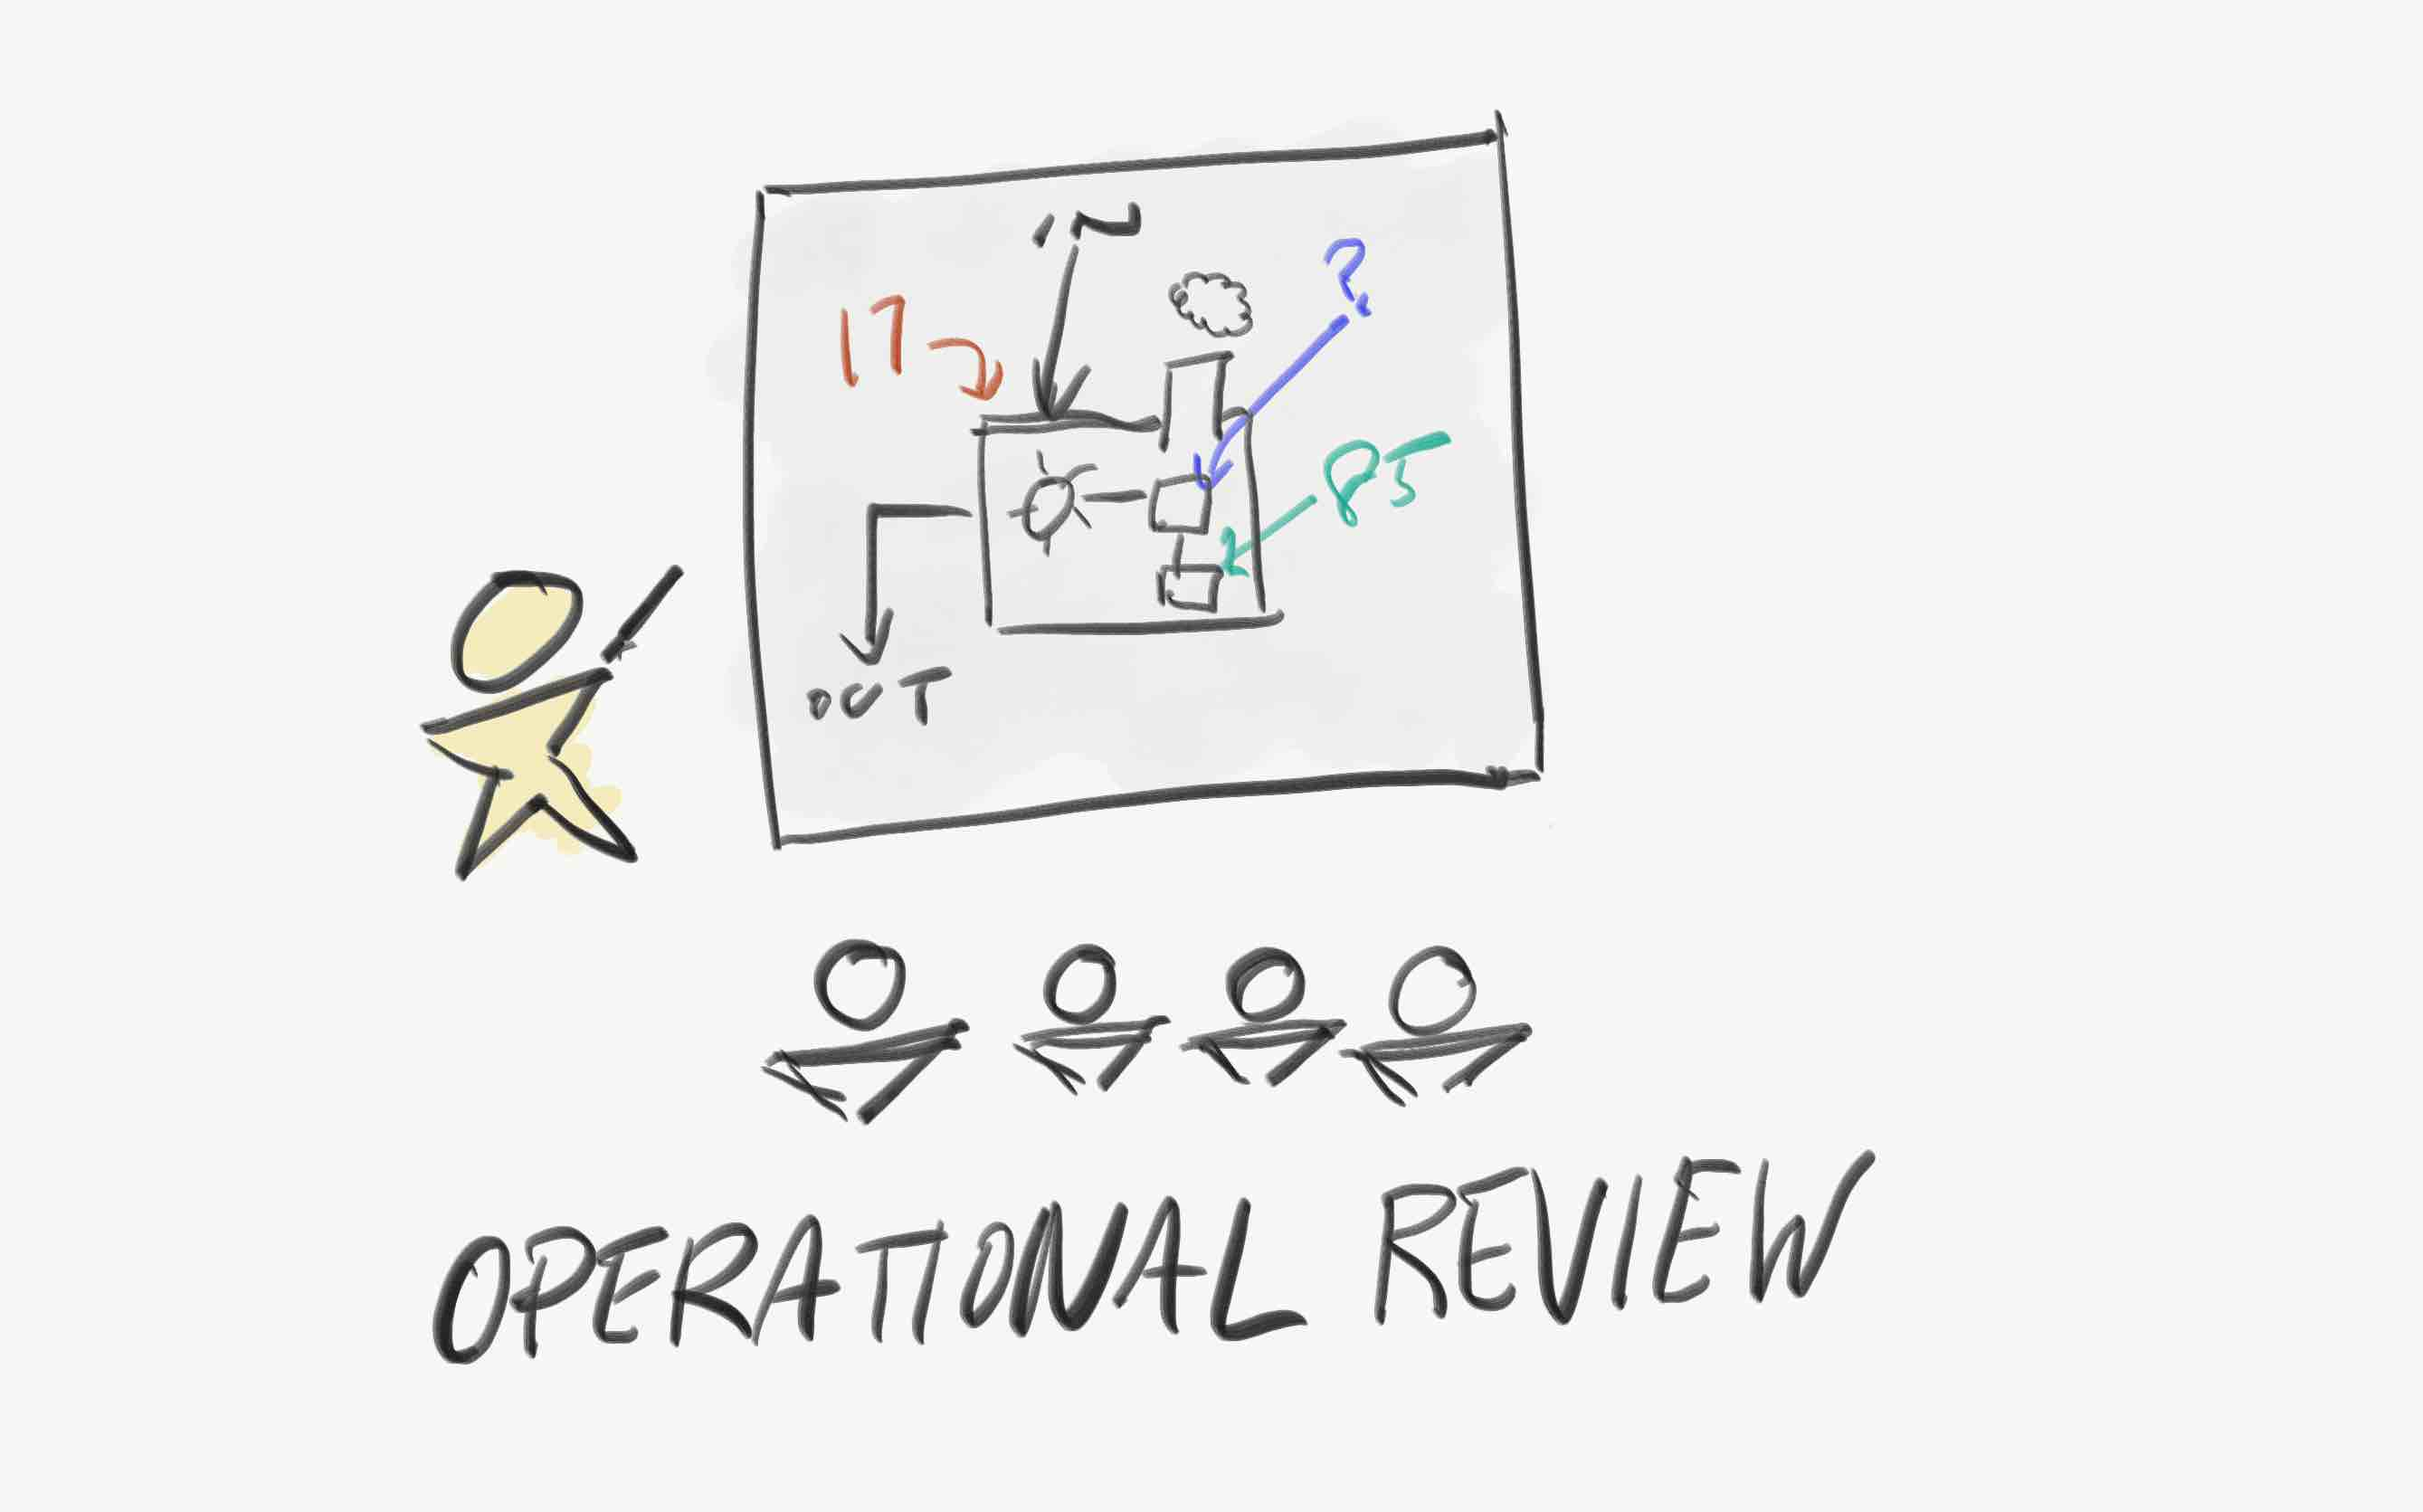 Operational Review Illustration